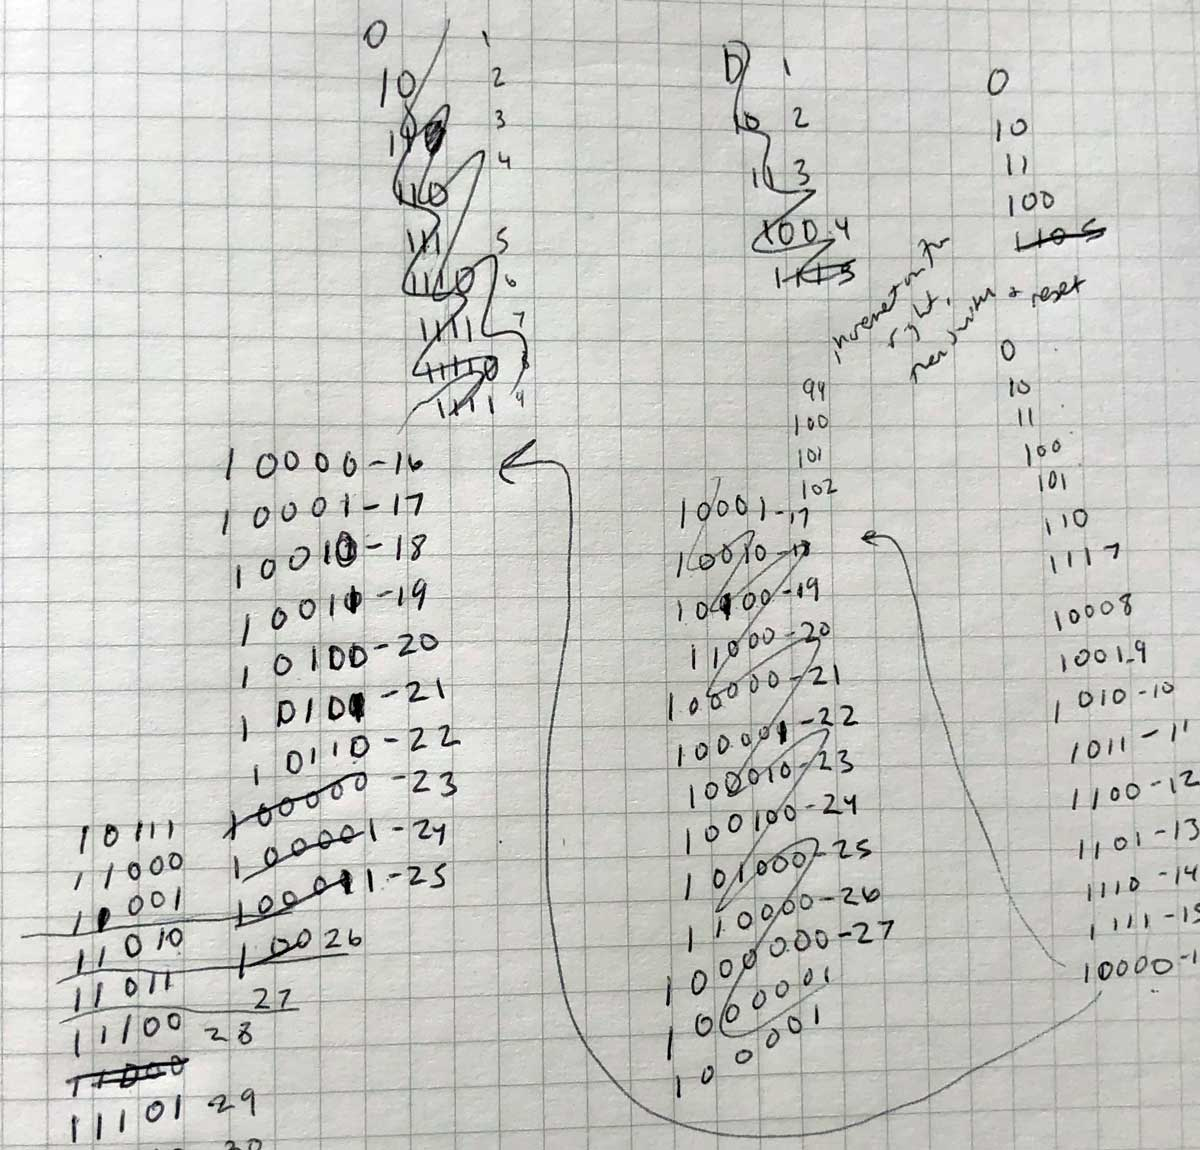 A notebook pad showing binary counting and mistakes